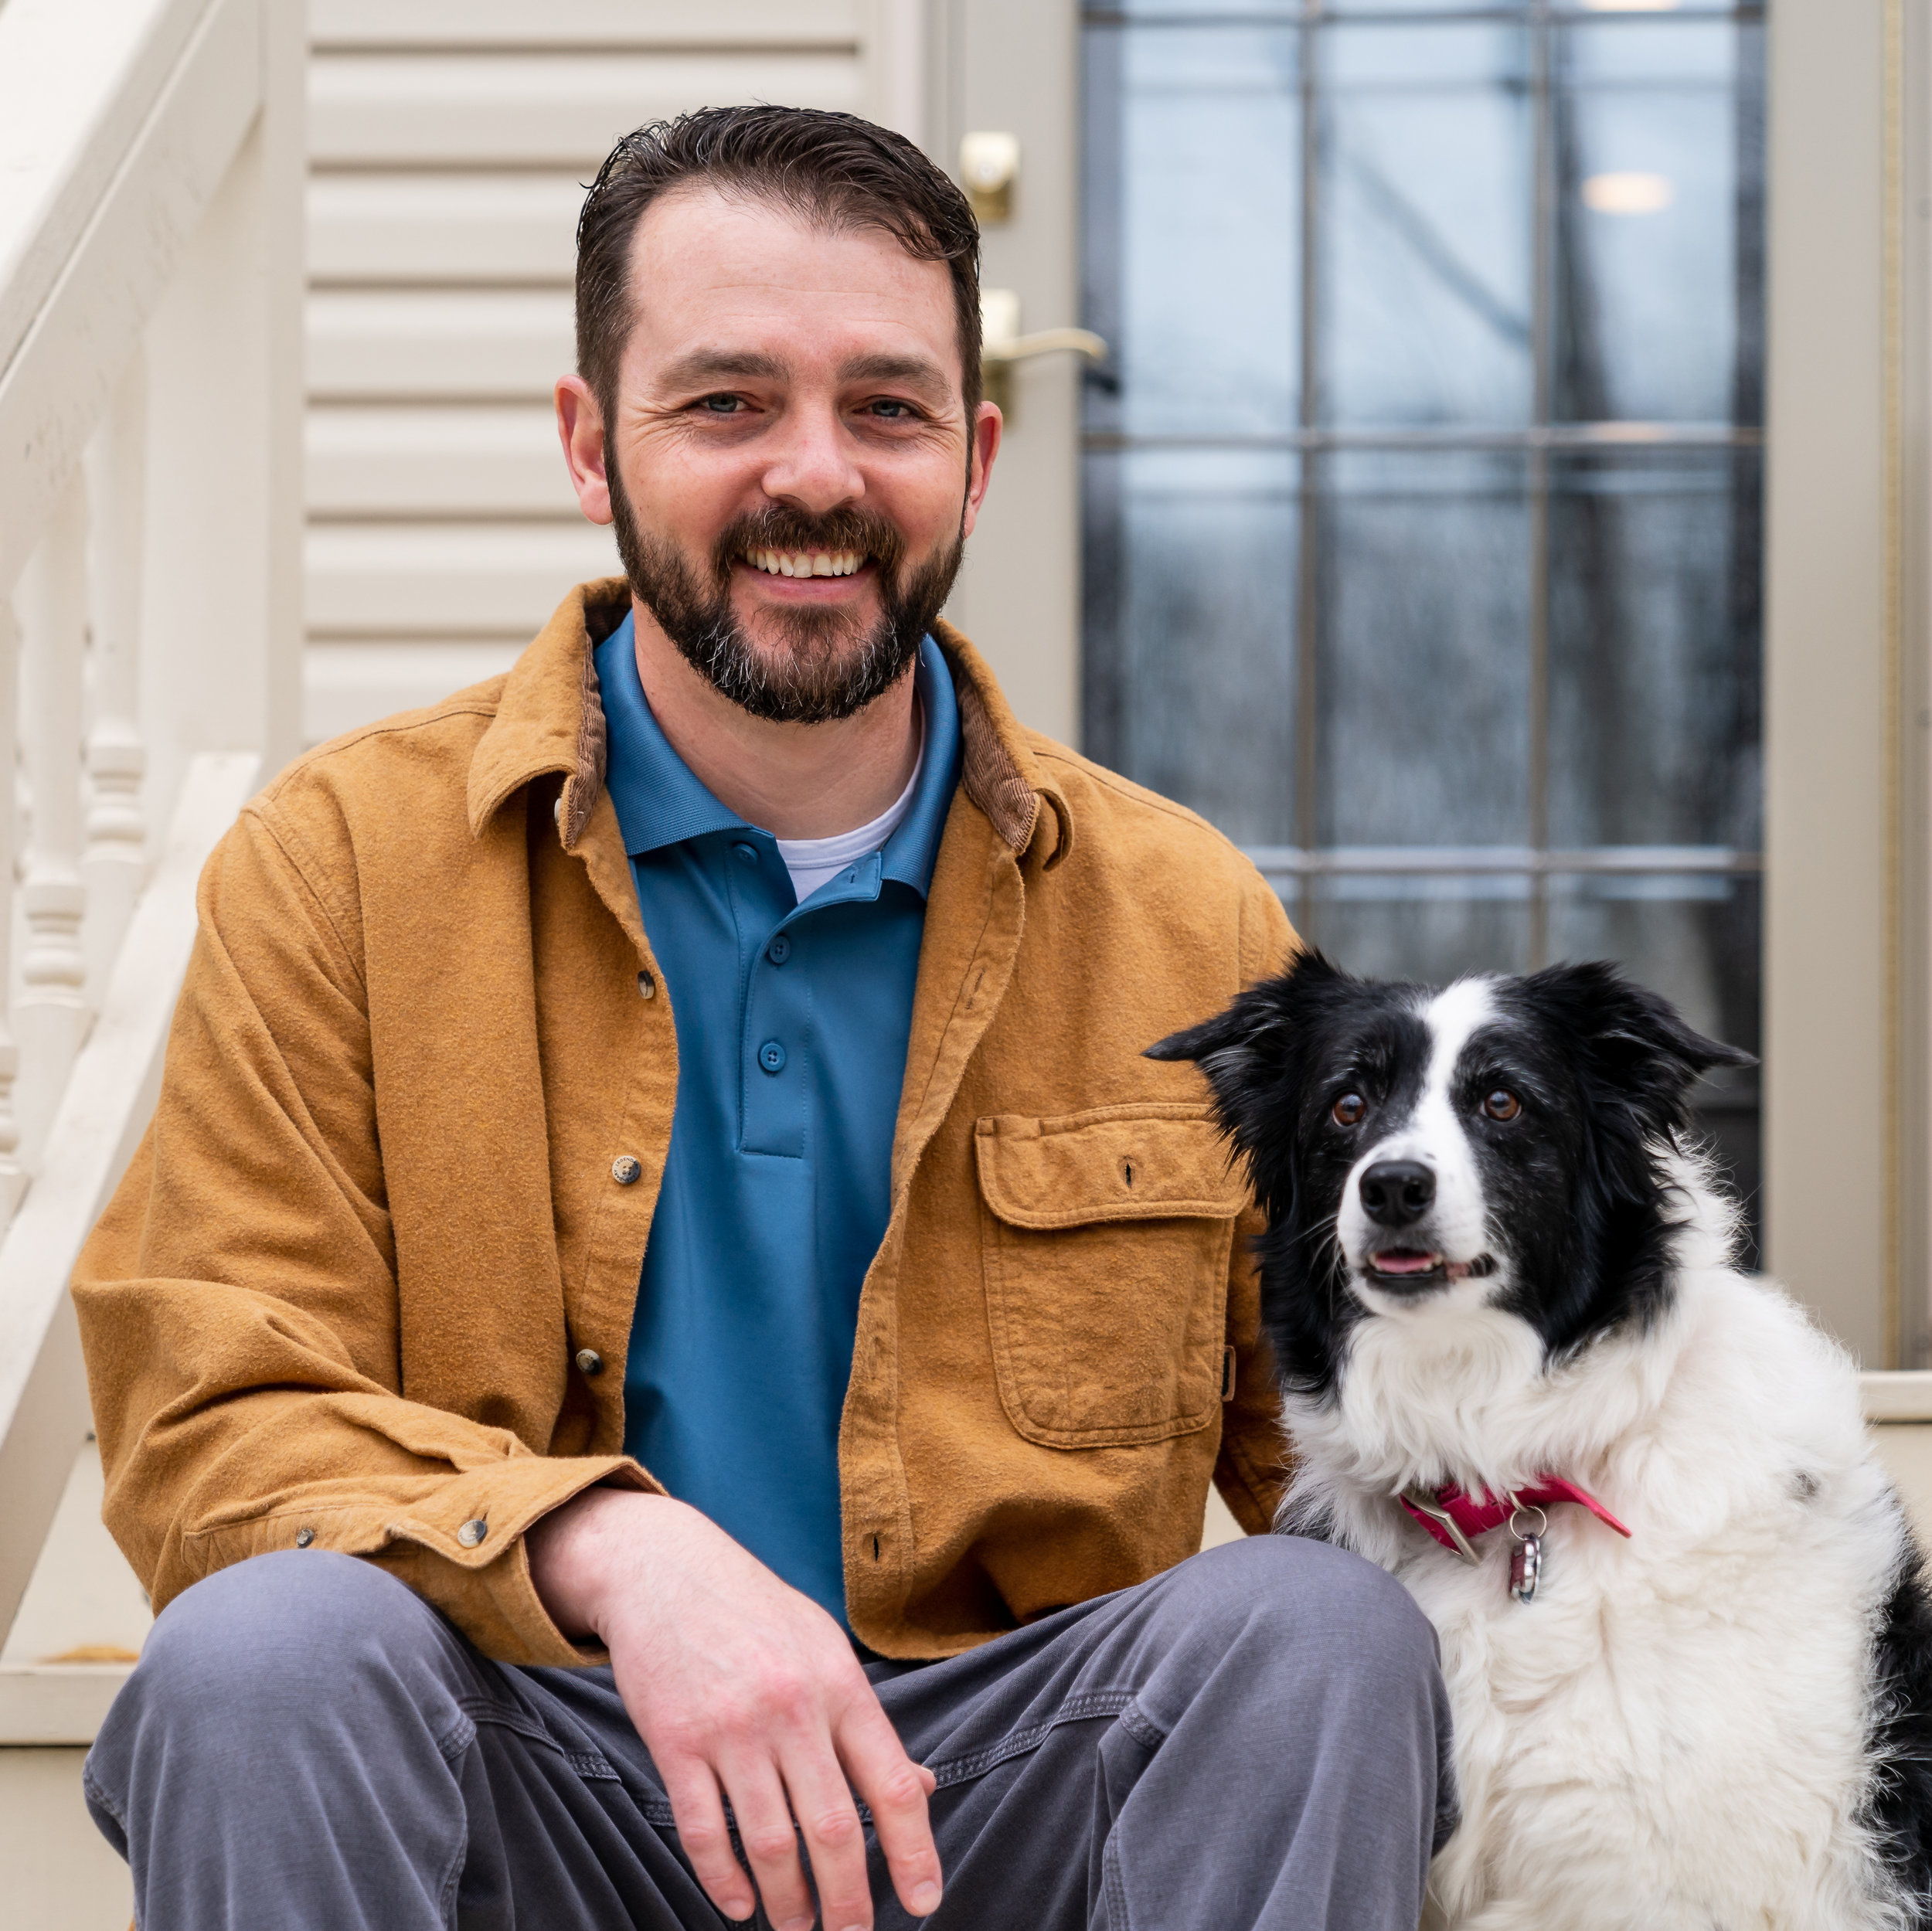 Trustworthy contractor in Pilesgrove, NJ | Gary Bell and his pup